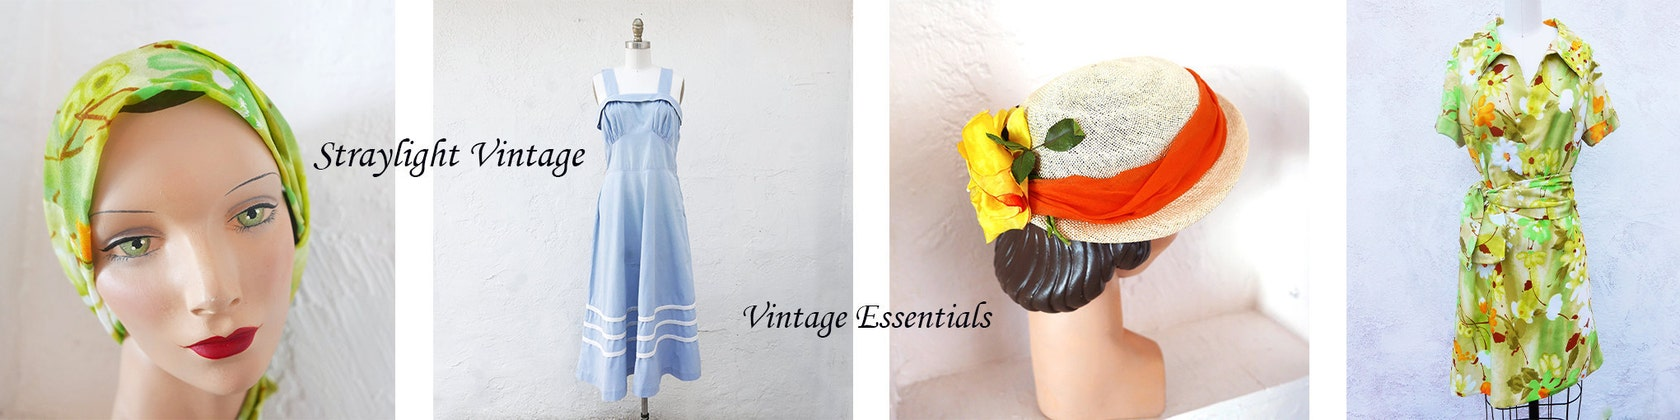 2e46b678cfc Vintage Essentials by StraylightVintage on Etsy